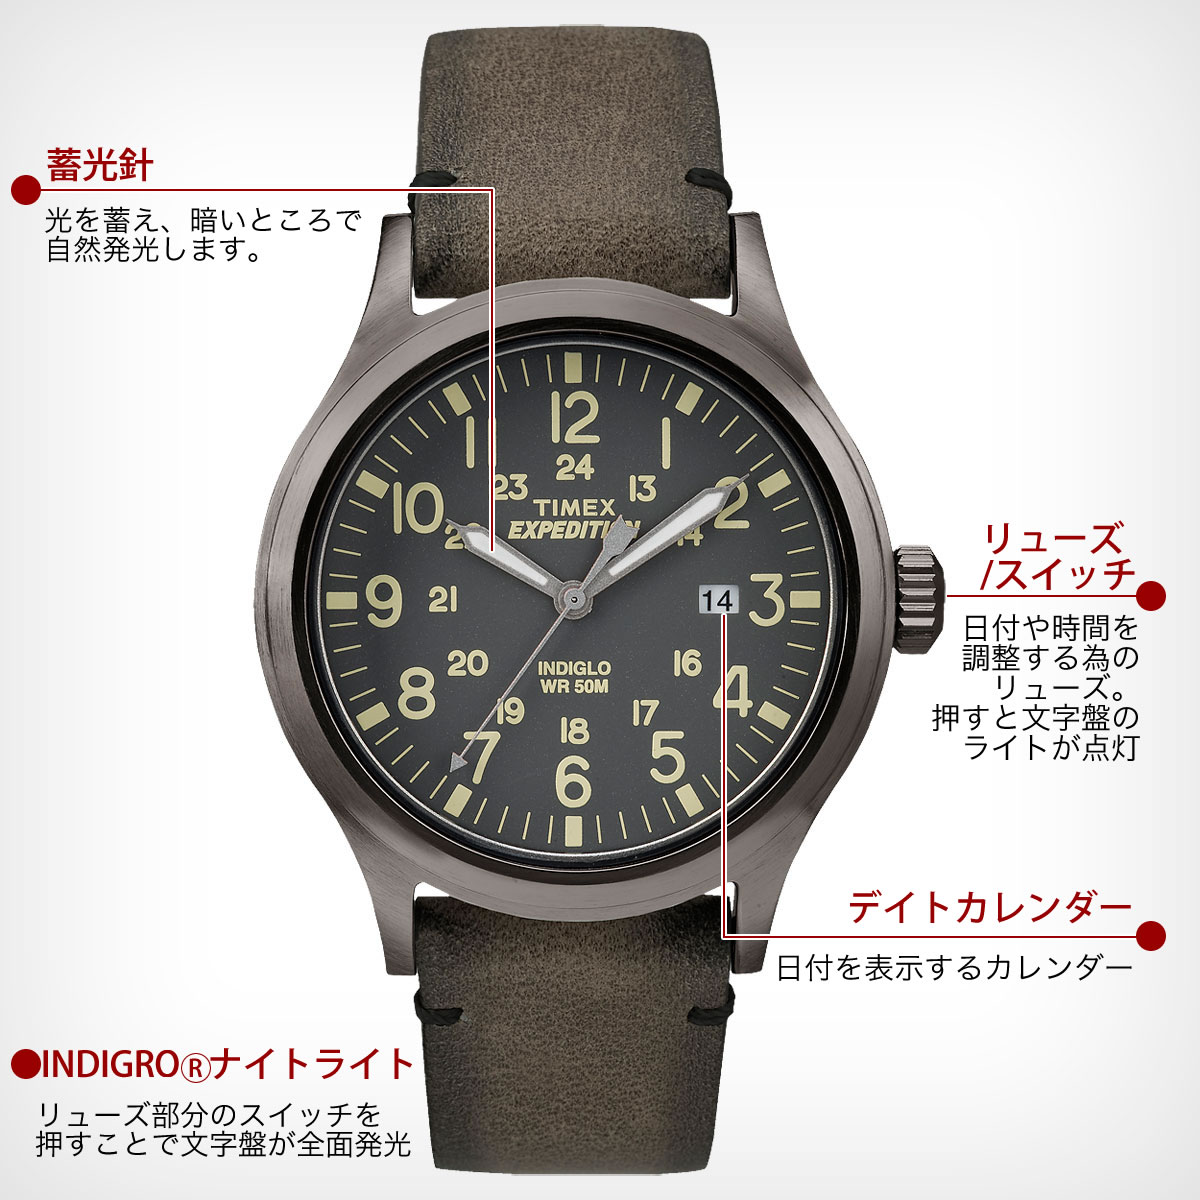 TIMEX Expedition  SCOUT ブラック×カーキ 40mm TW4B01700 機能詳細